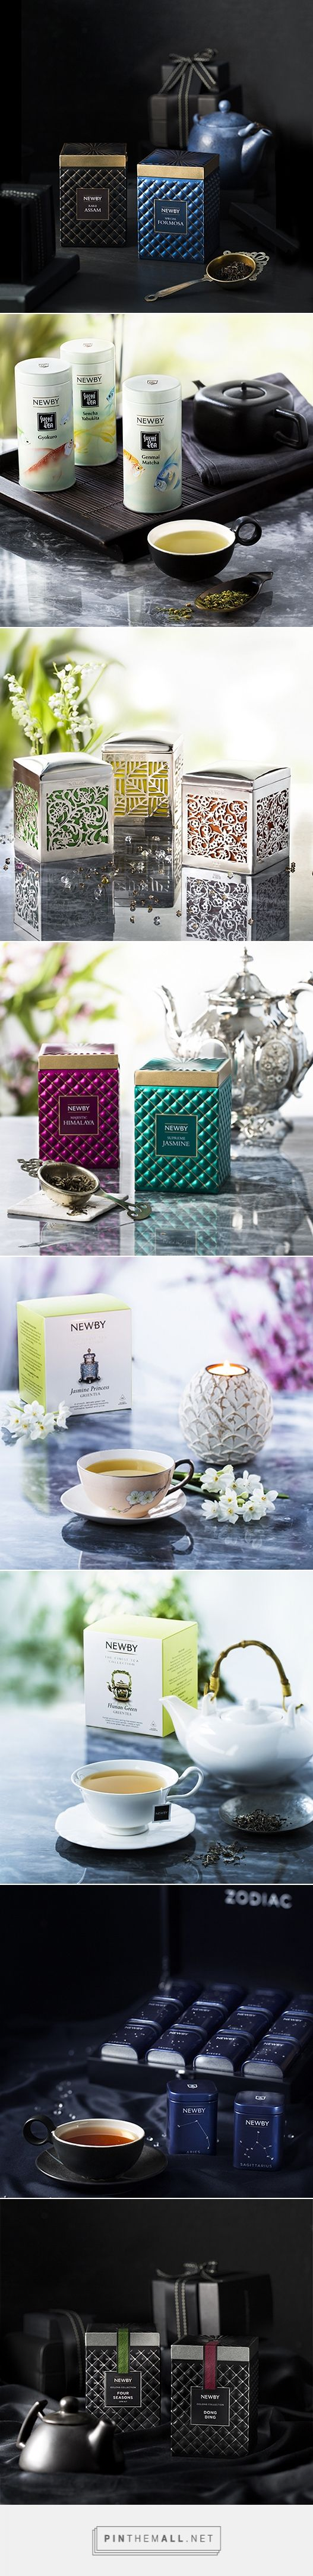 Newby Teas | Photography by Issy Oakes | Packaging Designed by Newby Teas In-house Design Team | The Zodiac Collection Won Silver Pentaward 2015